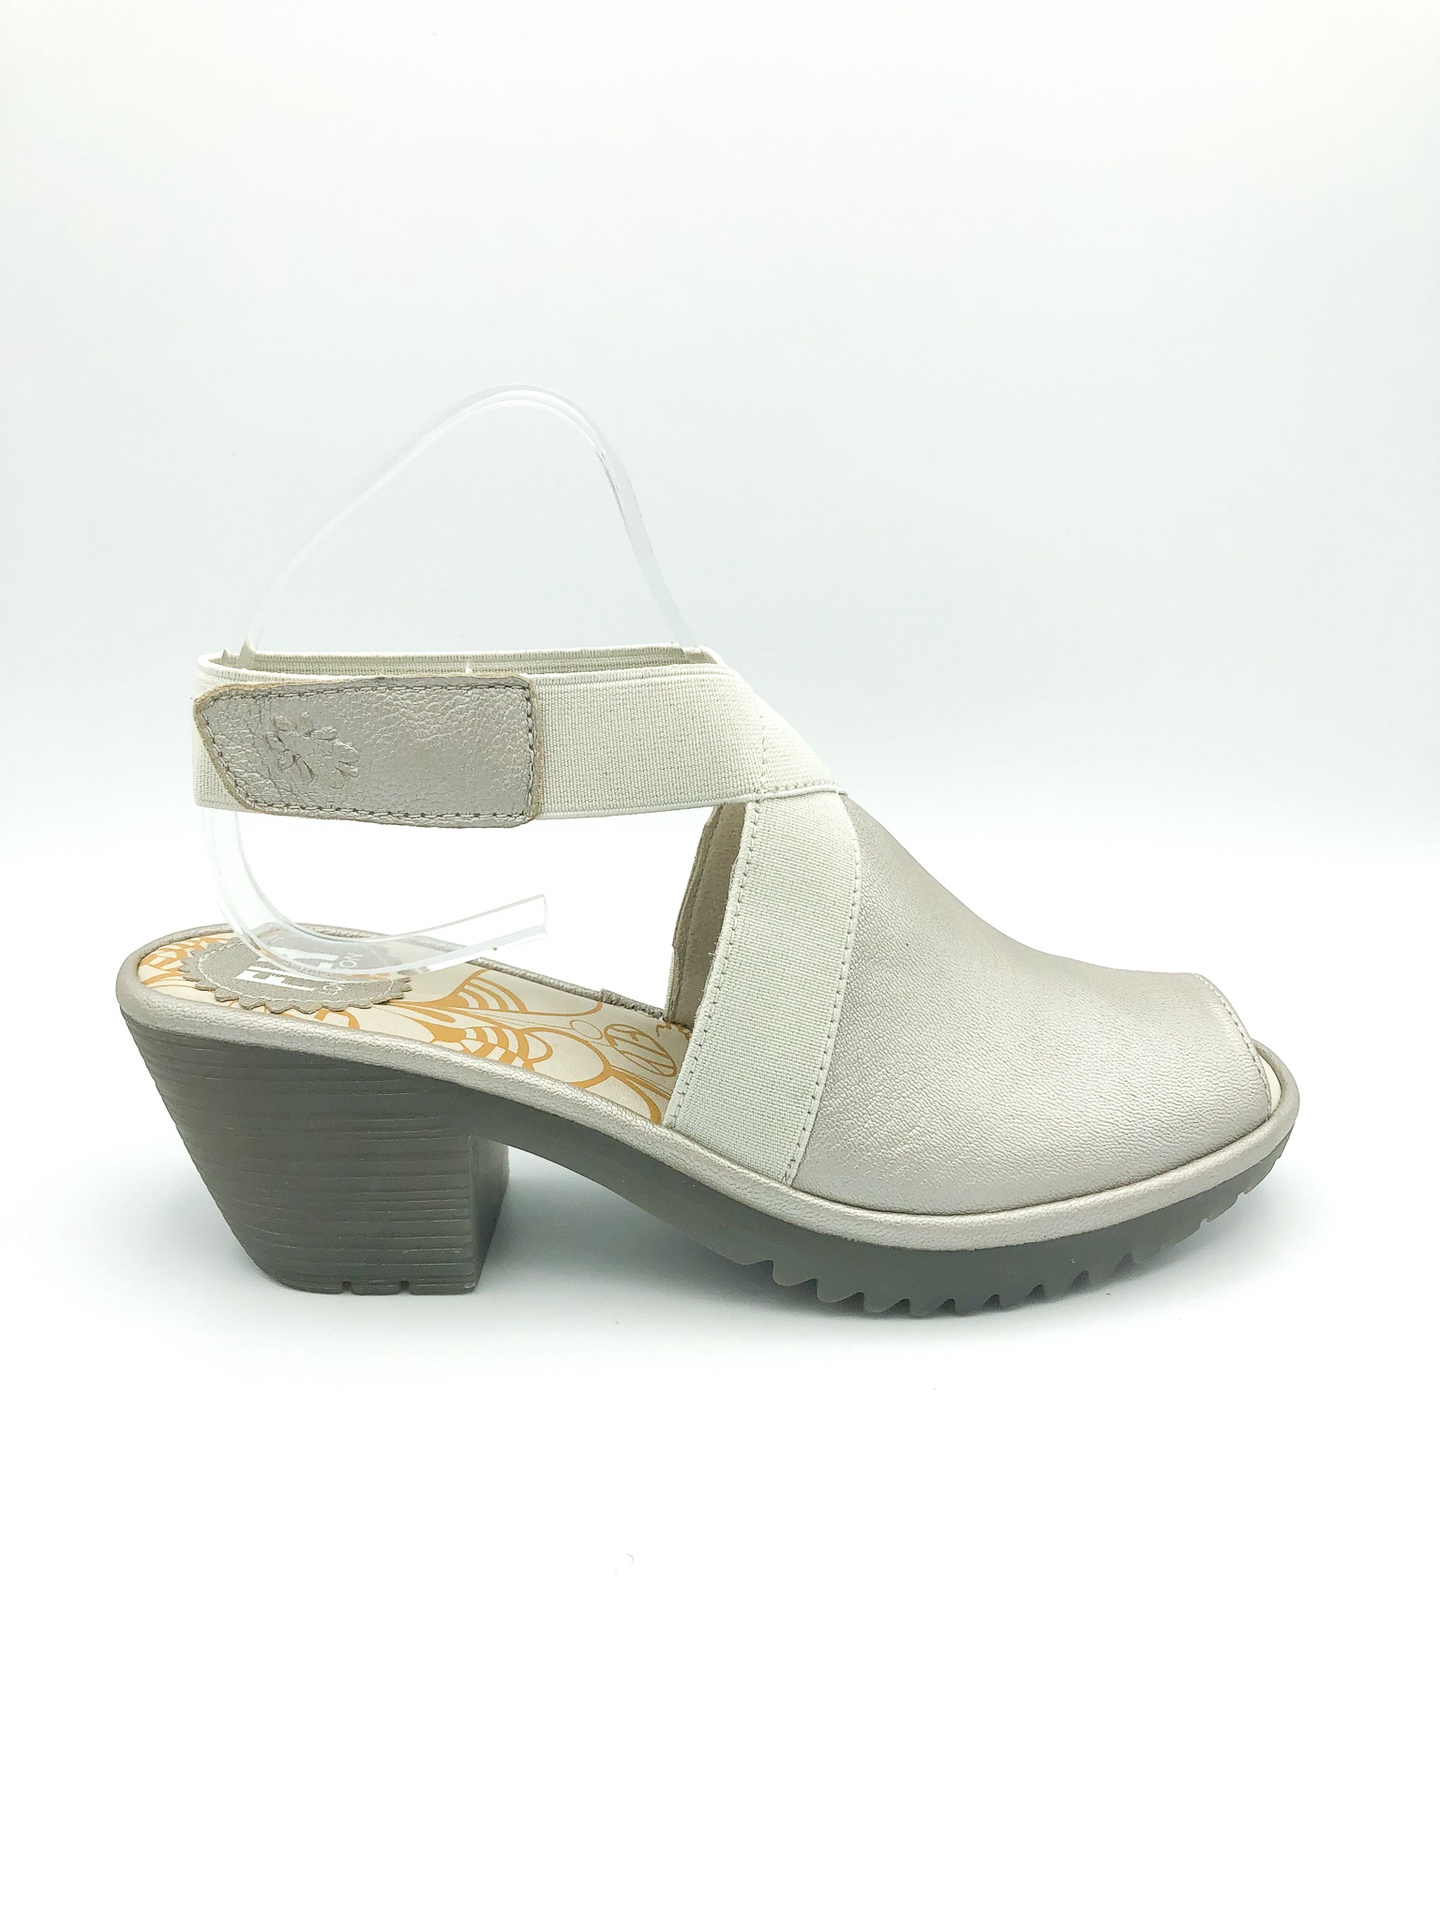 FLY LONDON - WATO944FLY IN SILVER/OFF WHITE